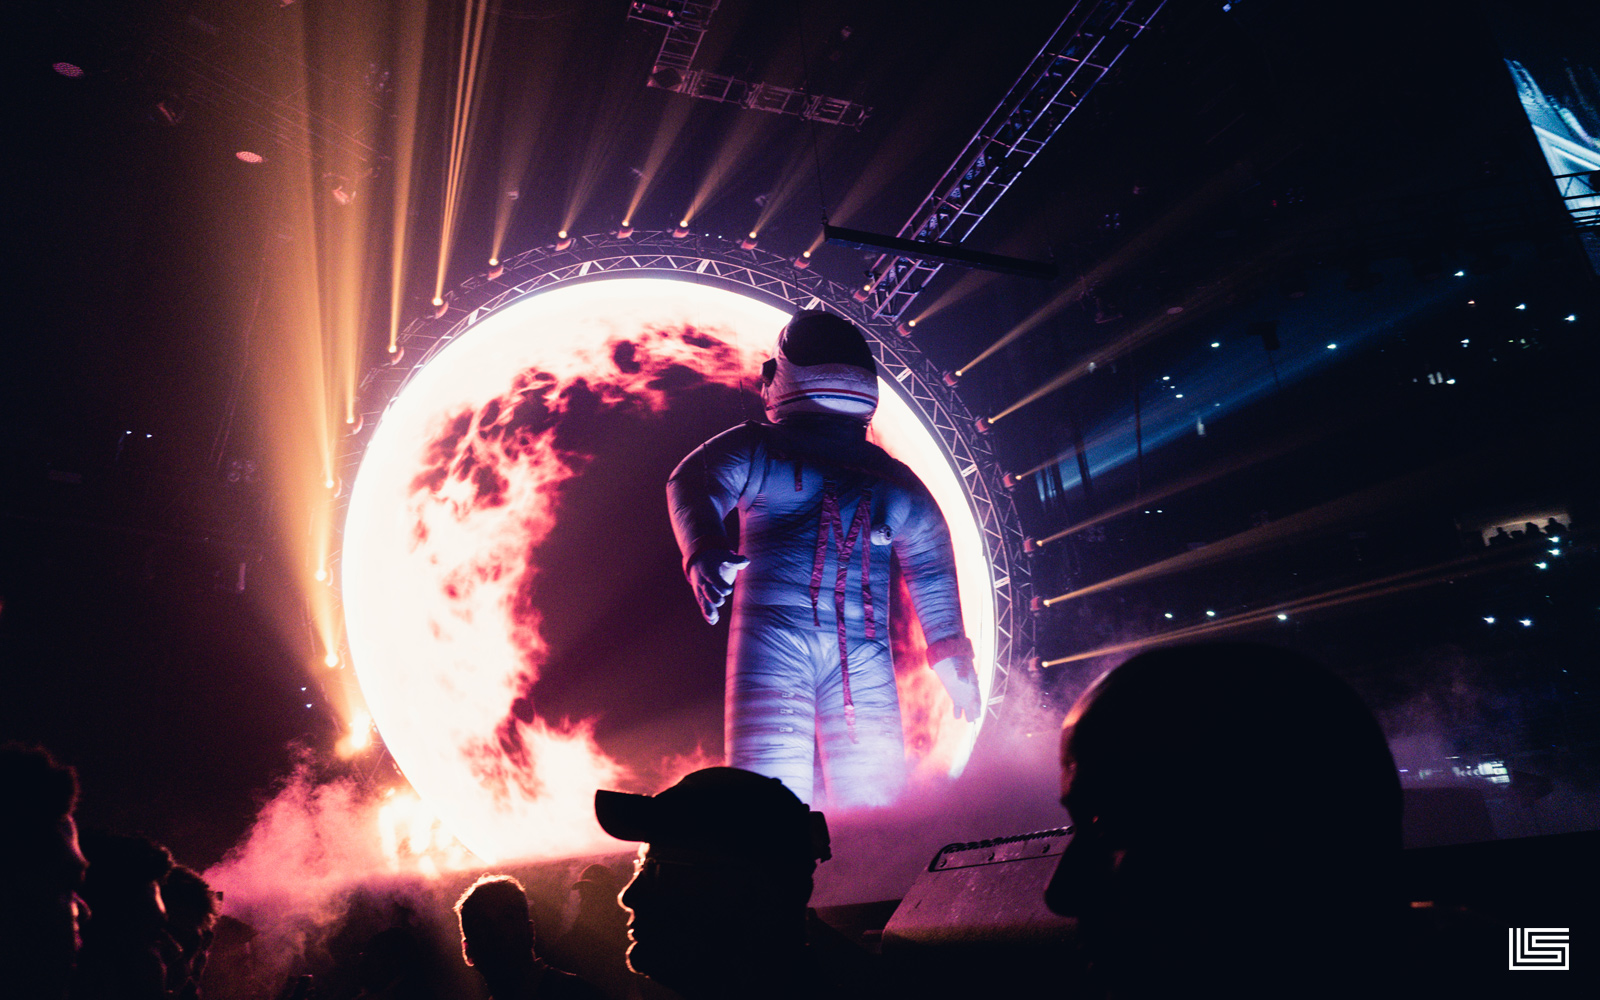 TRAVIS SCOTT COMES TO PHILLY–OUR ASTROWORLD EXPERIENCE